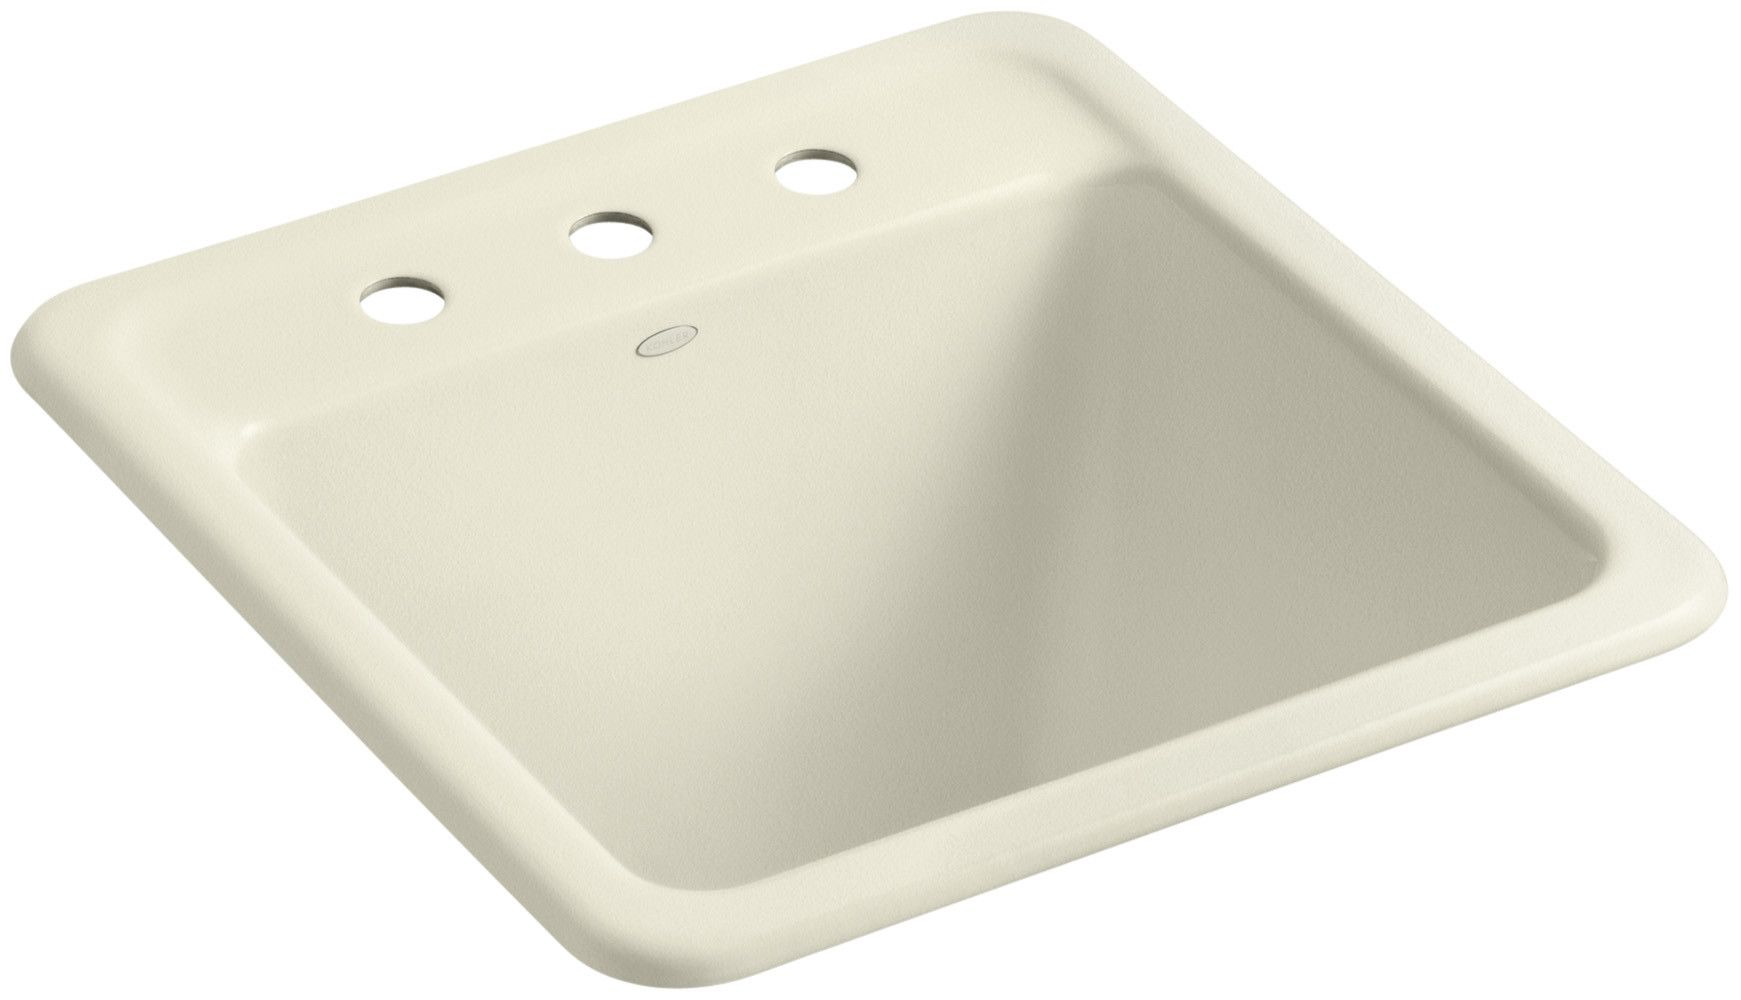 Park Falls Top-Mount/Undermount Utility Sink with Three Faucet Holes